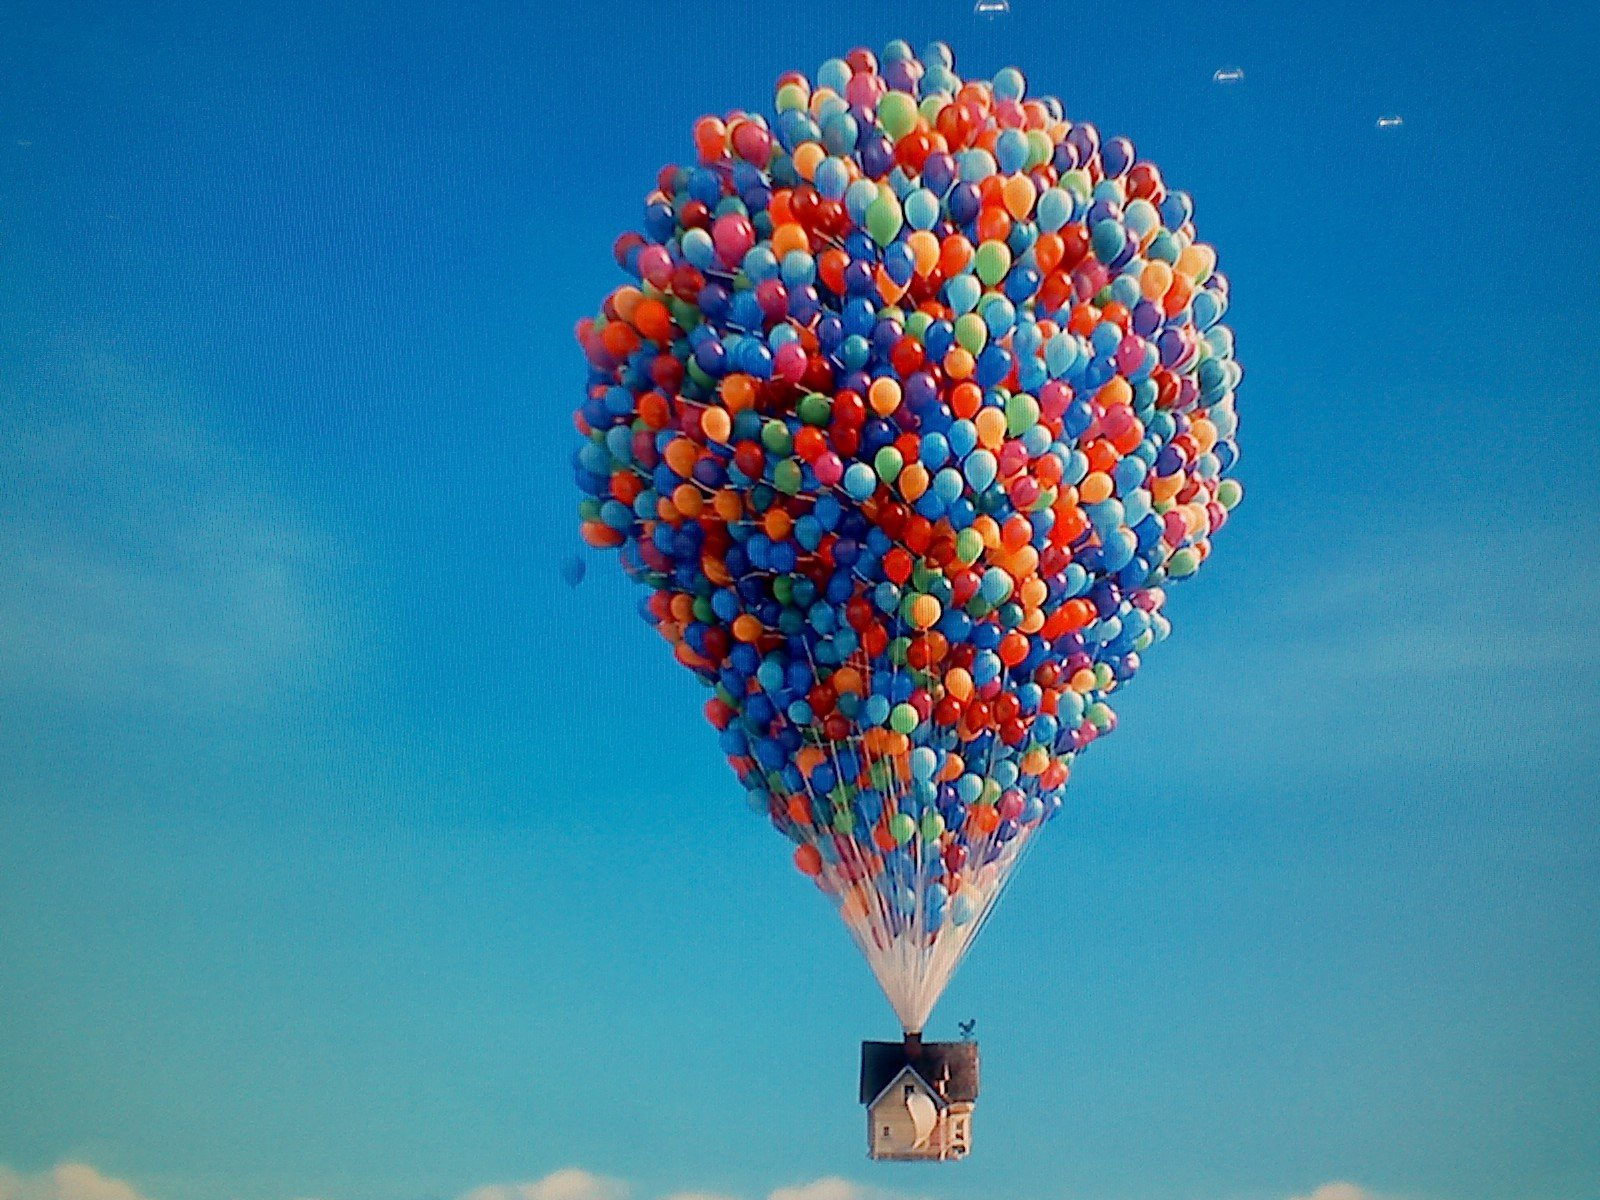 Up In The Air movie wallpaper 1600x1200 323901 WallpaperUP 1600x1200